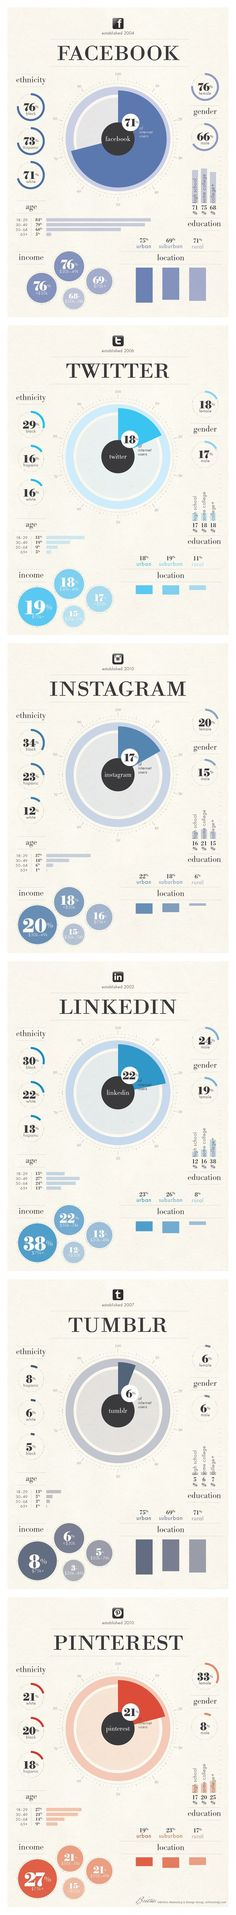 #SocialMedia: User Demographics For #Facebook #Twitter #Instagram #LinkedIn #Tumblr and #Pinterest - #infographic